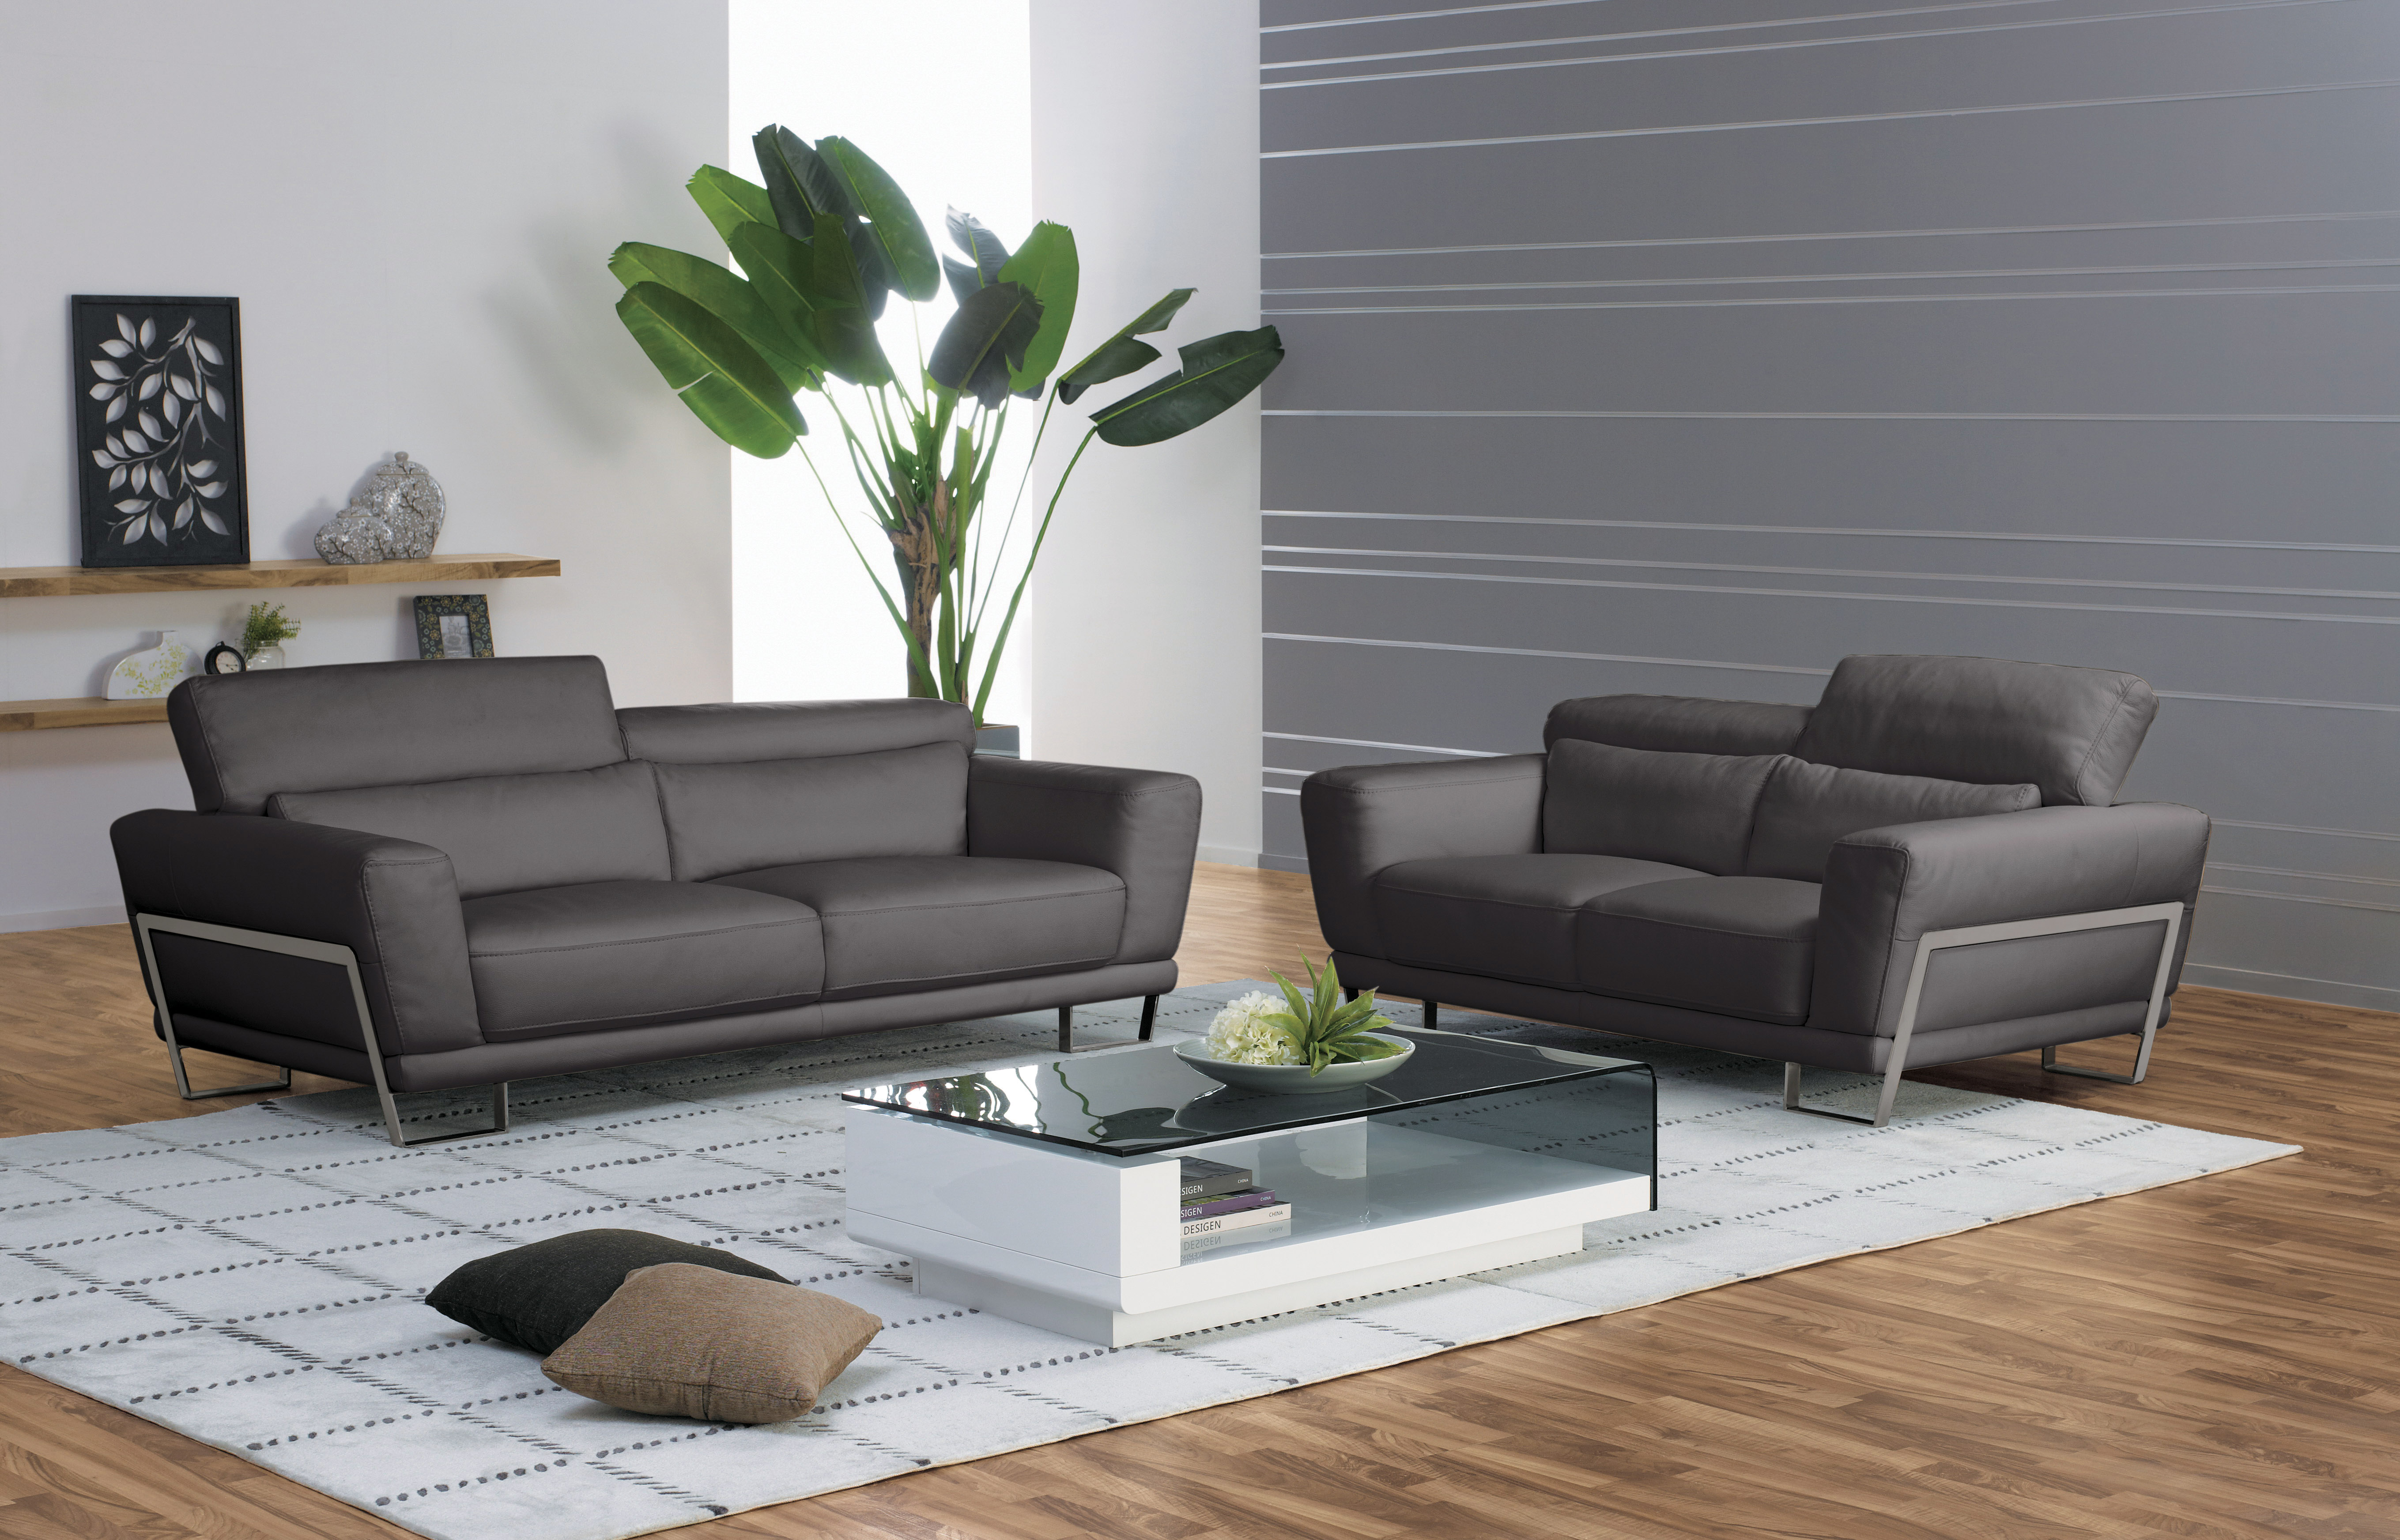 Genuine And Italian Leather Modern Designer Sofas 3 Pc Clic Living Room Set